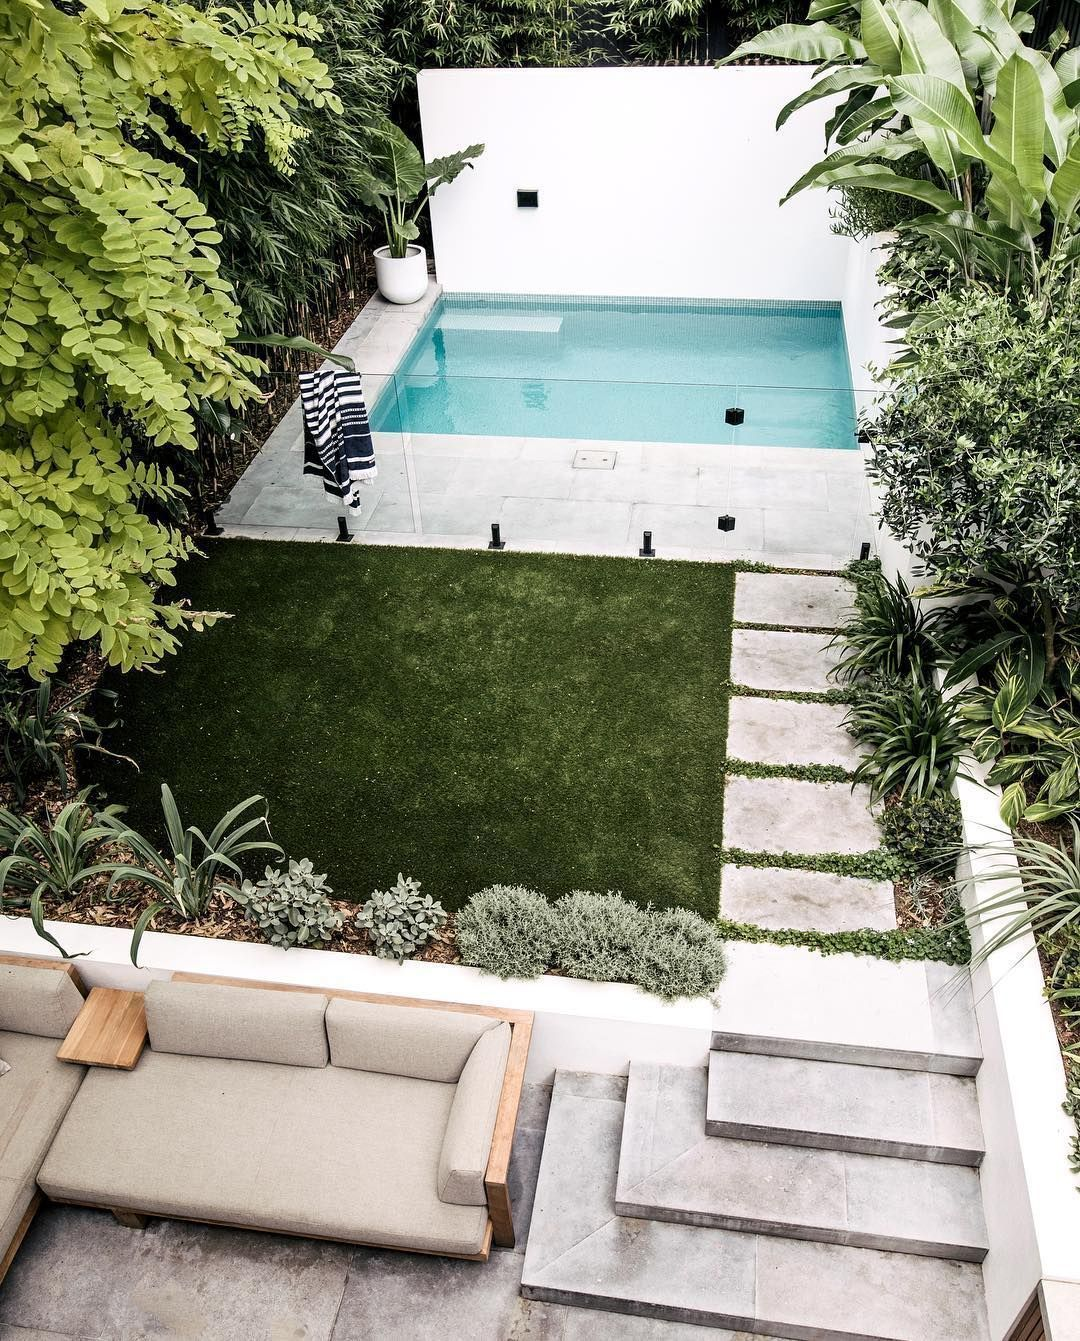 13 Marvelous Small Backyard Designs With Pool in 2020